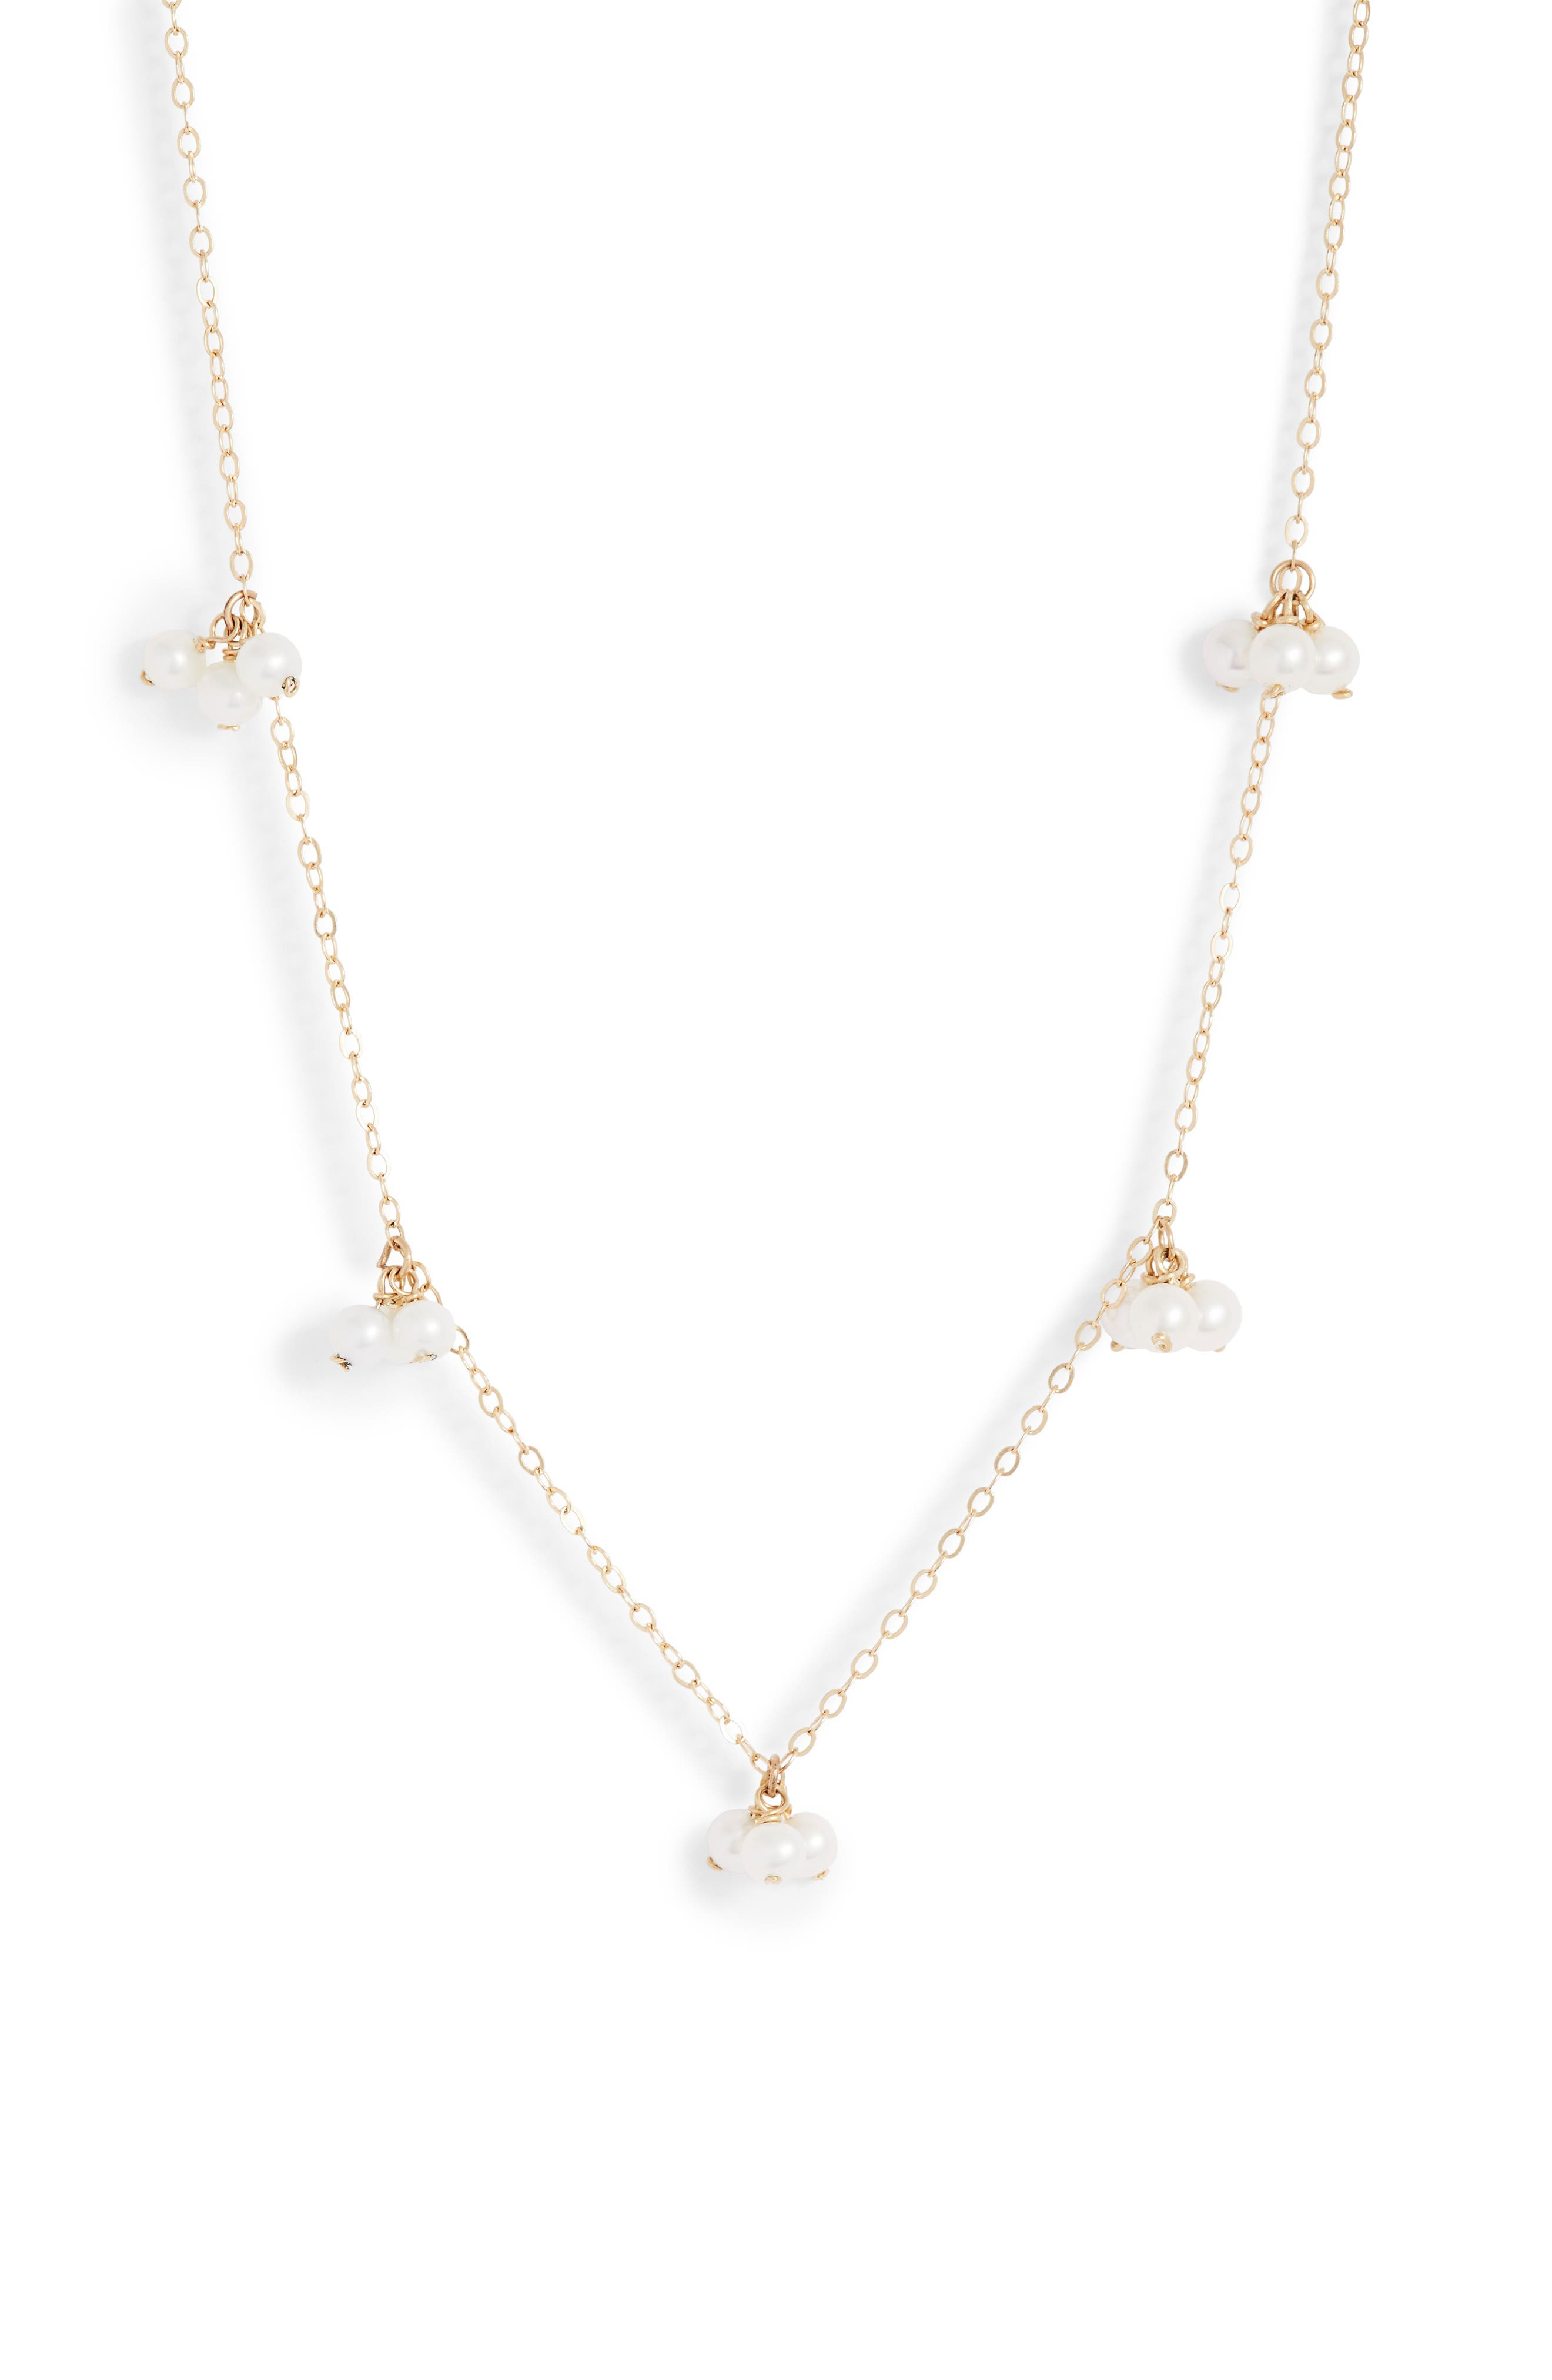 Baby Pearl Trio Gold Station Necklace,                             Main thumbnail 1, color,                             YELLOW GOLD/ WHITE PEARL